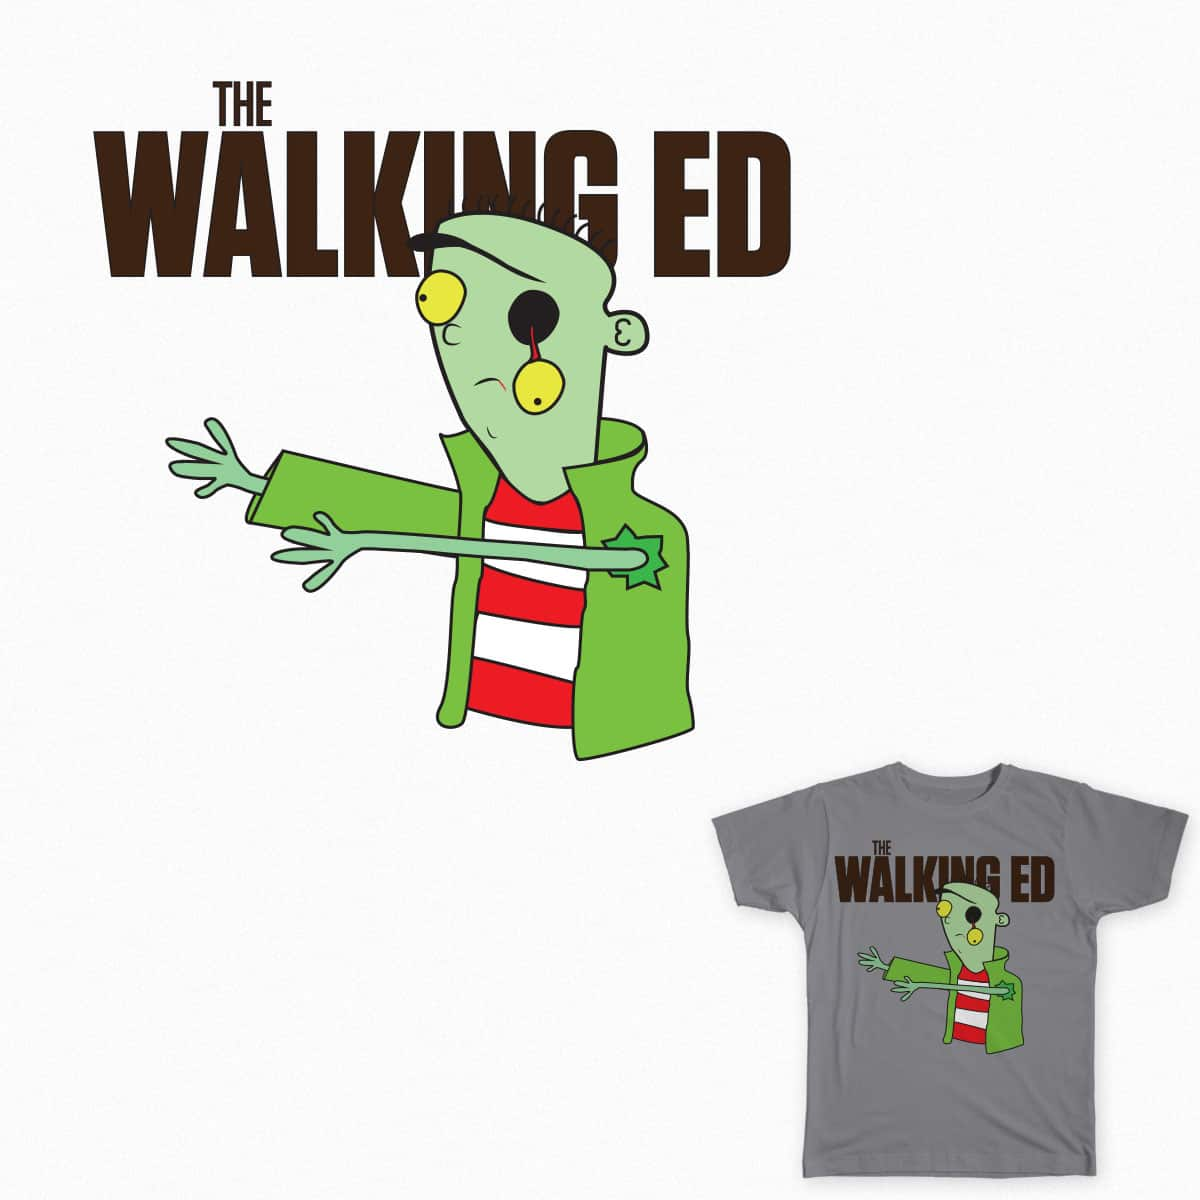 The Walking ED by geza2 on Threadless